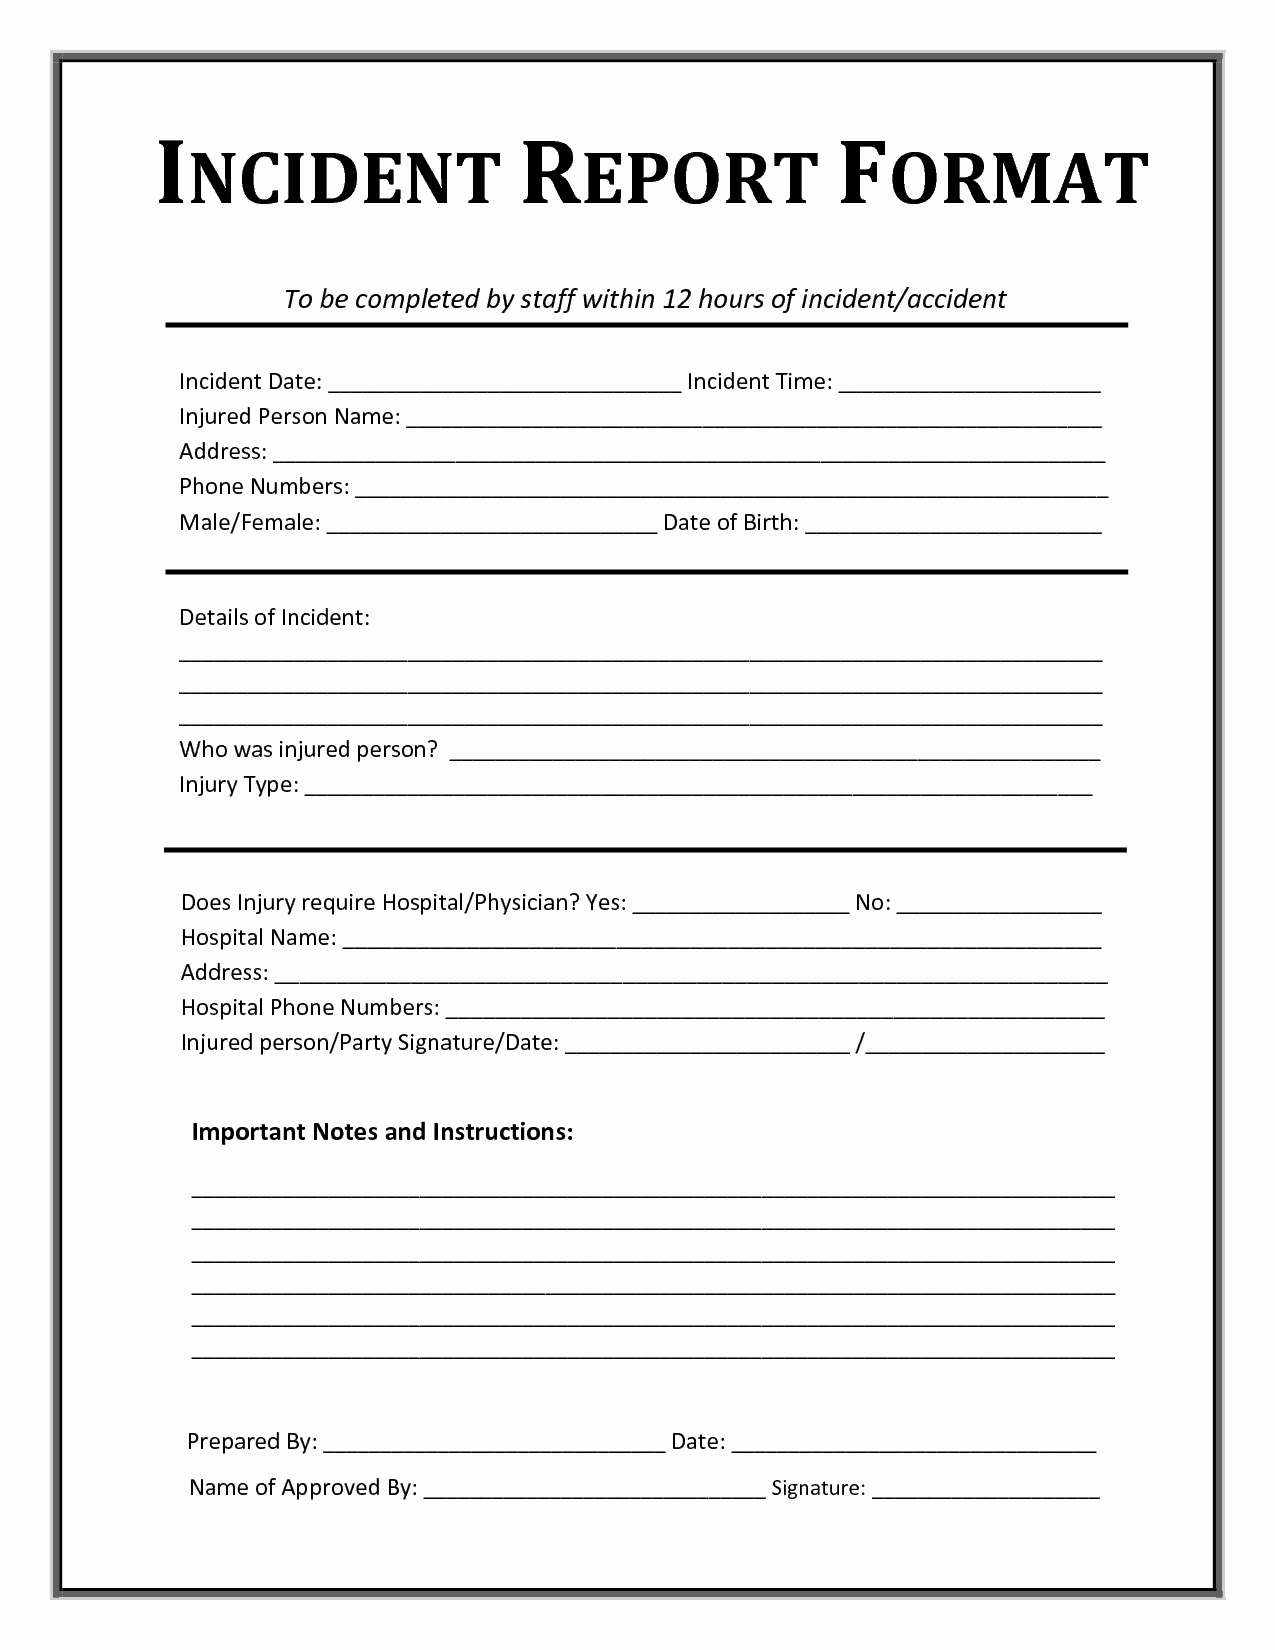 Incident Report Template Word Elegant 13 Incident Report Templates Excel Pdf formats